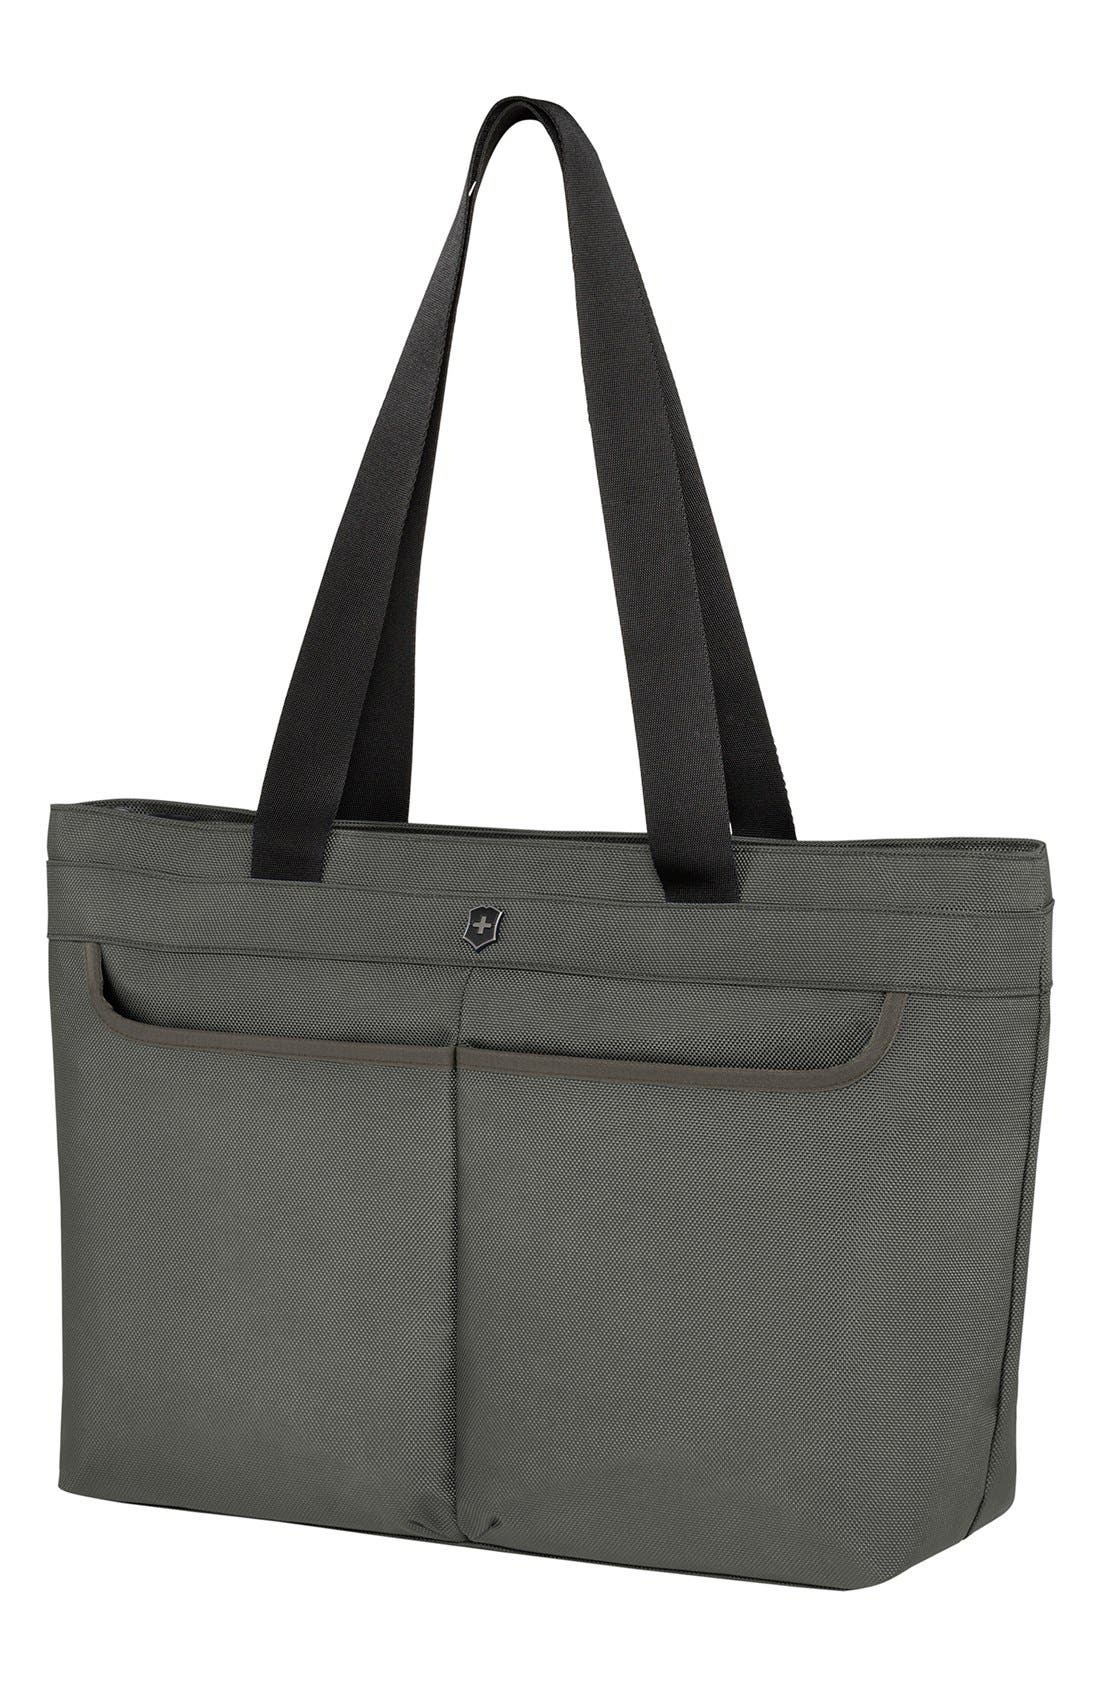 WT 5.0 Shopping Tote,                         Main,                         color, 399